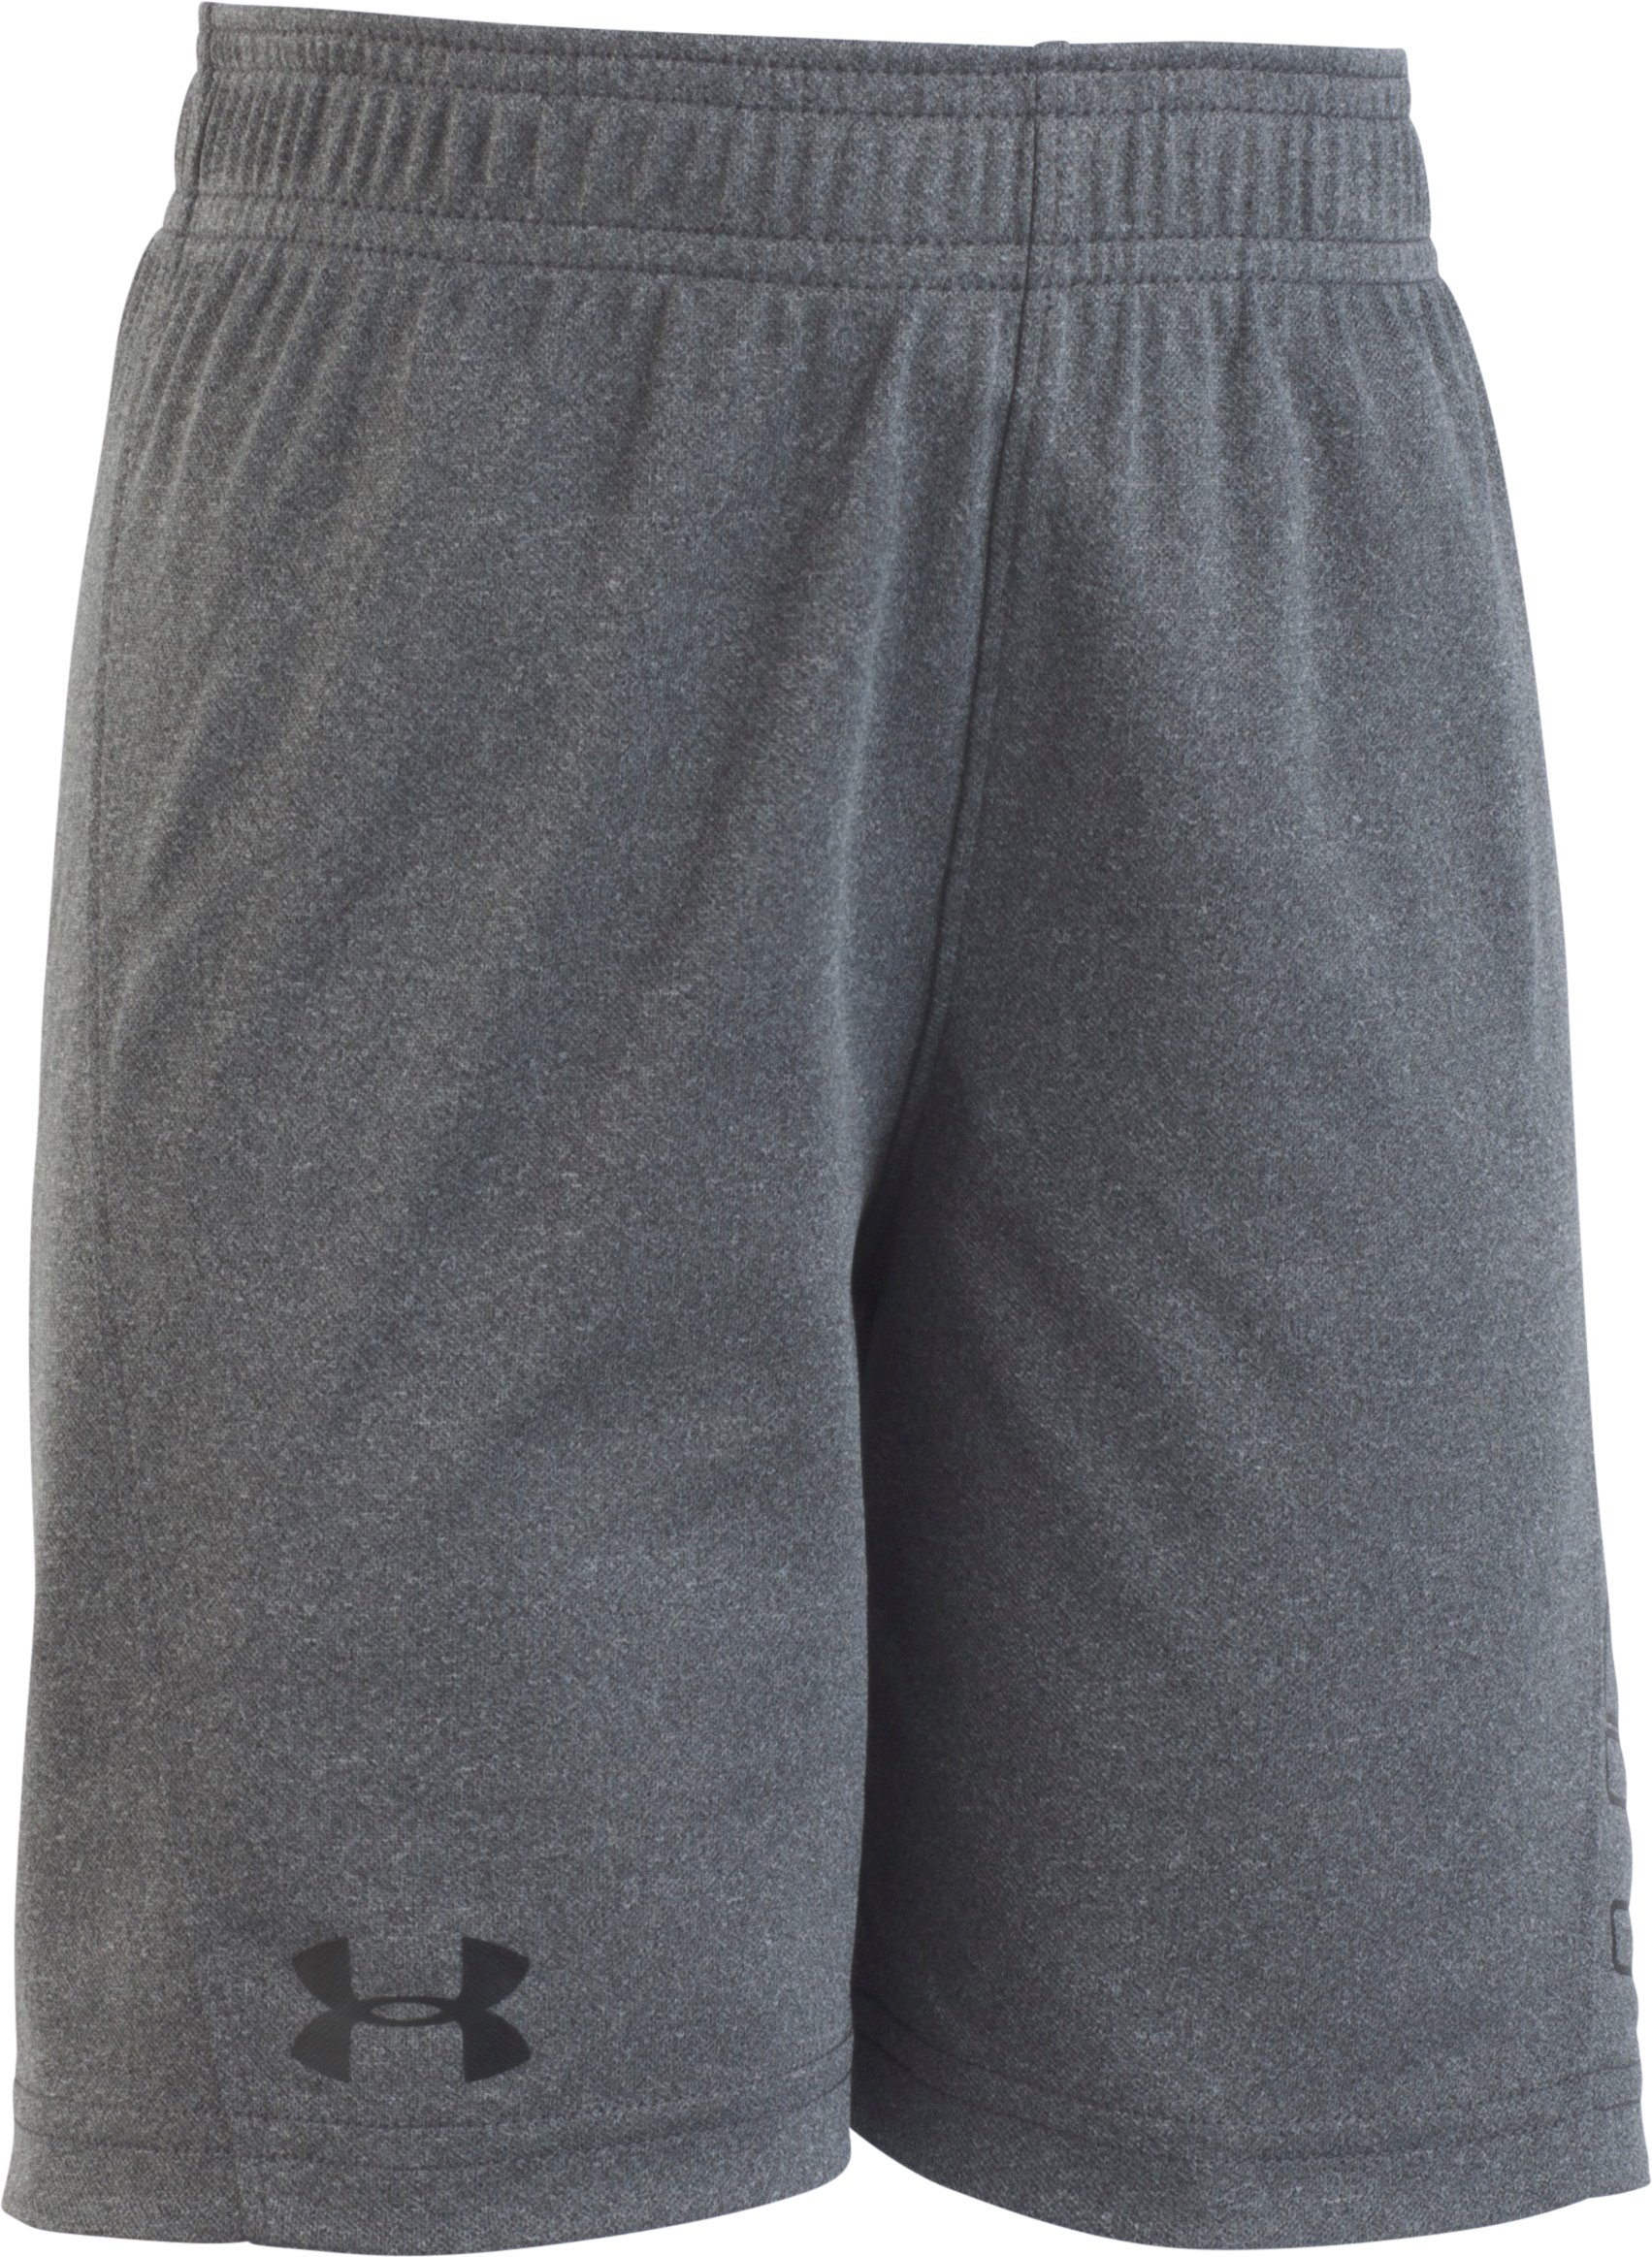 Boys' Toddler UA Kick Off Solid Short , Charcoal Medium Heather